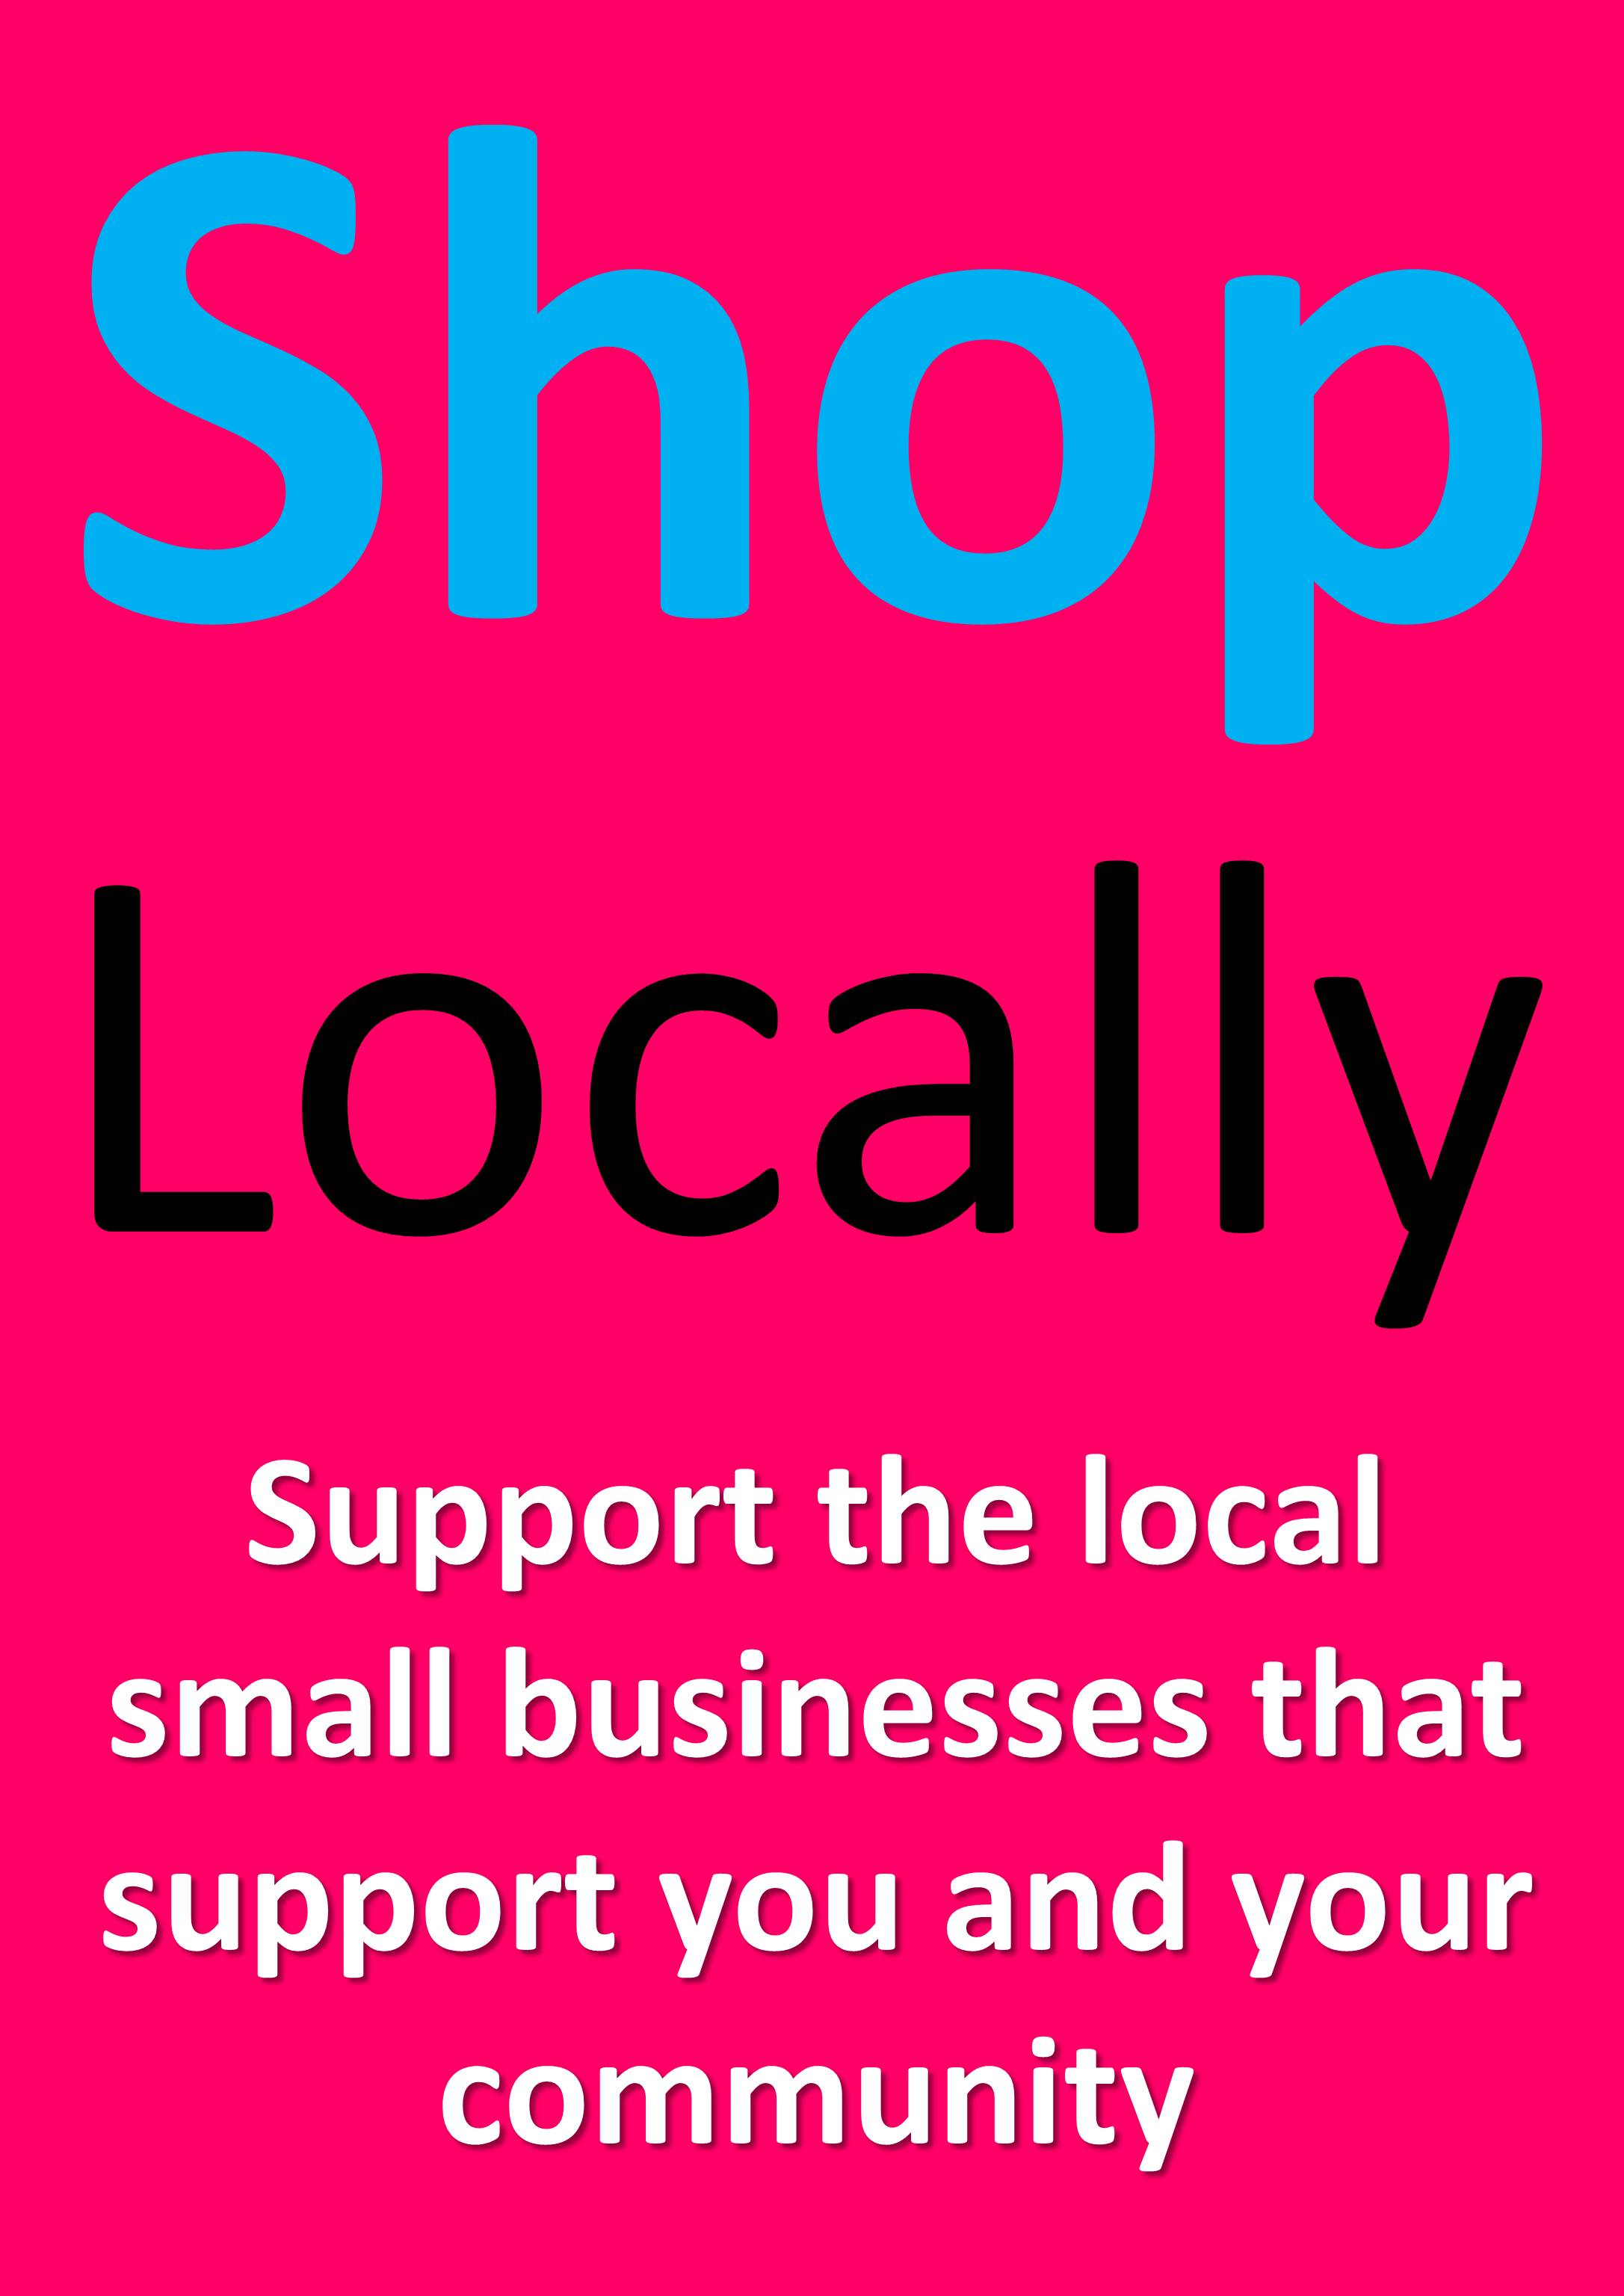 YOU have to go out of your way to tell people you're a local business